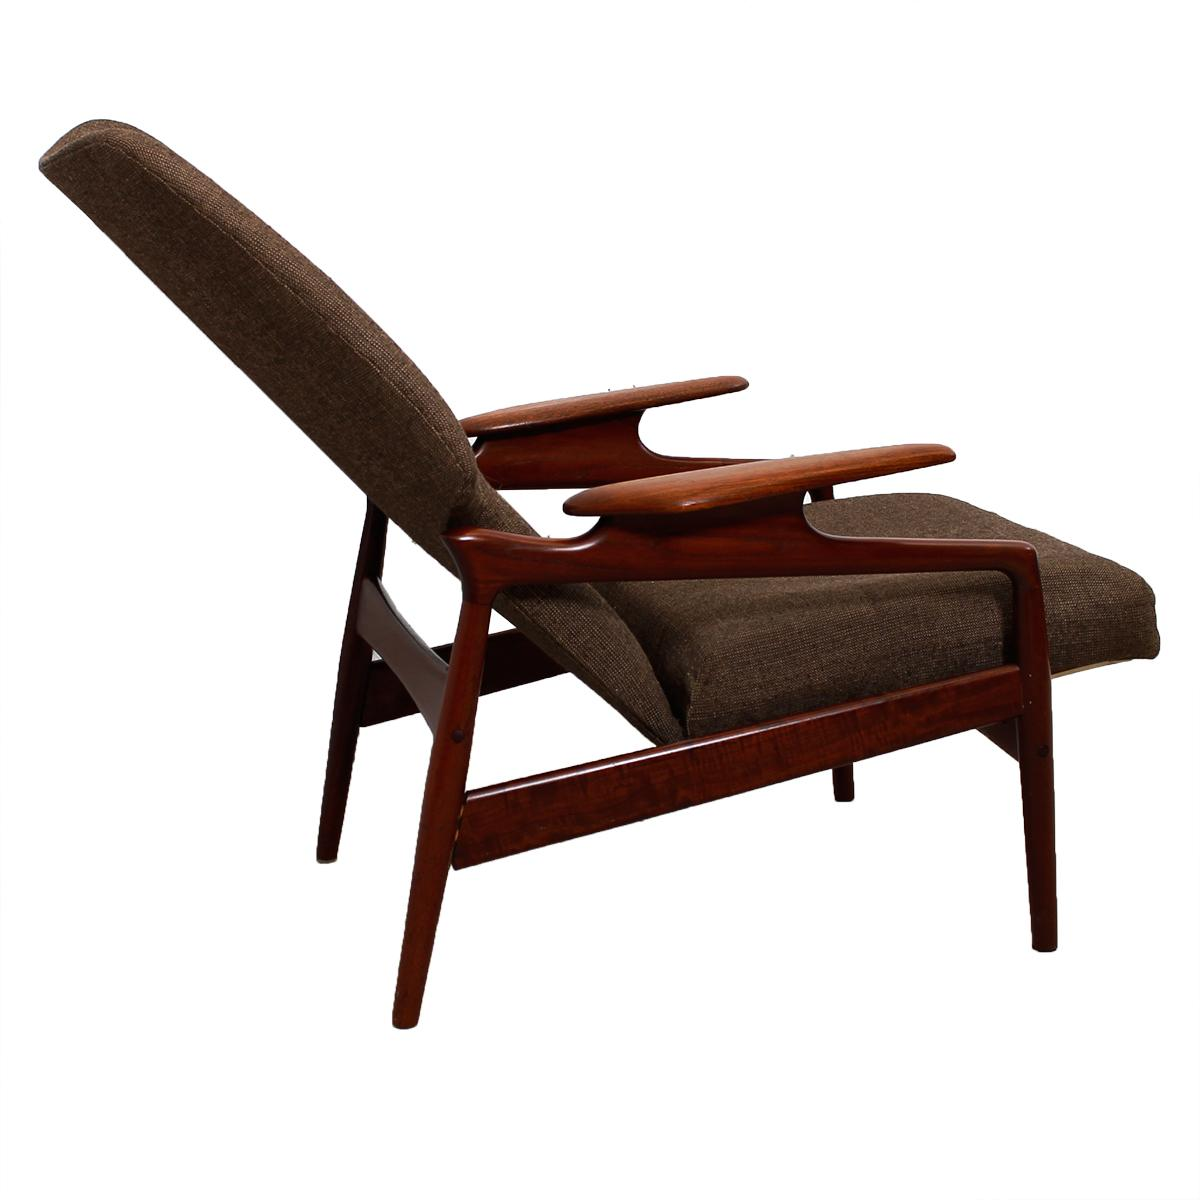 This Oversized Lounge Chair Attributed To Finn Juhl, Offers The Added  Luxury Of Reclining.